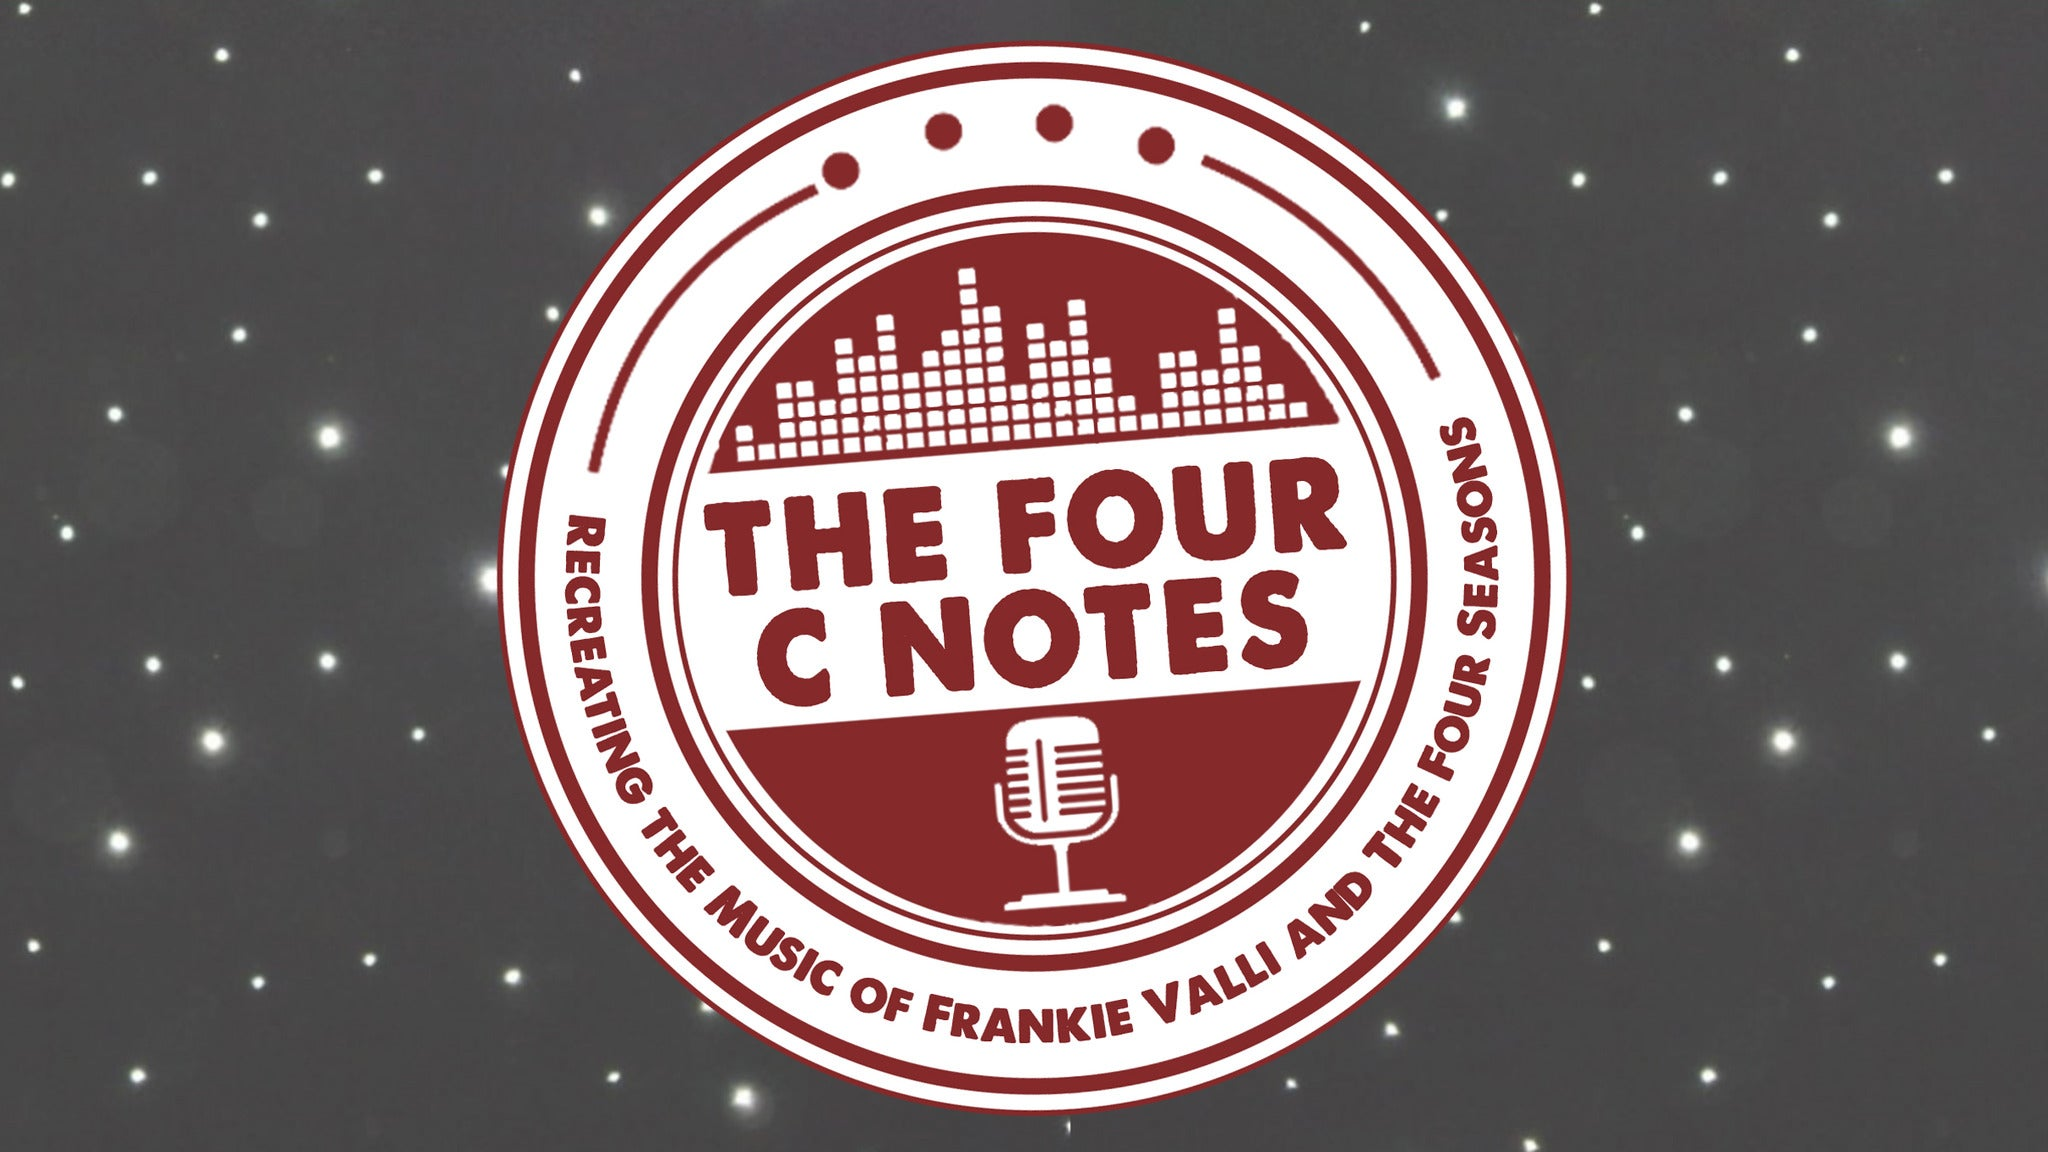 The Four C Notes at Marriott Theatre in Lincolnshire